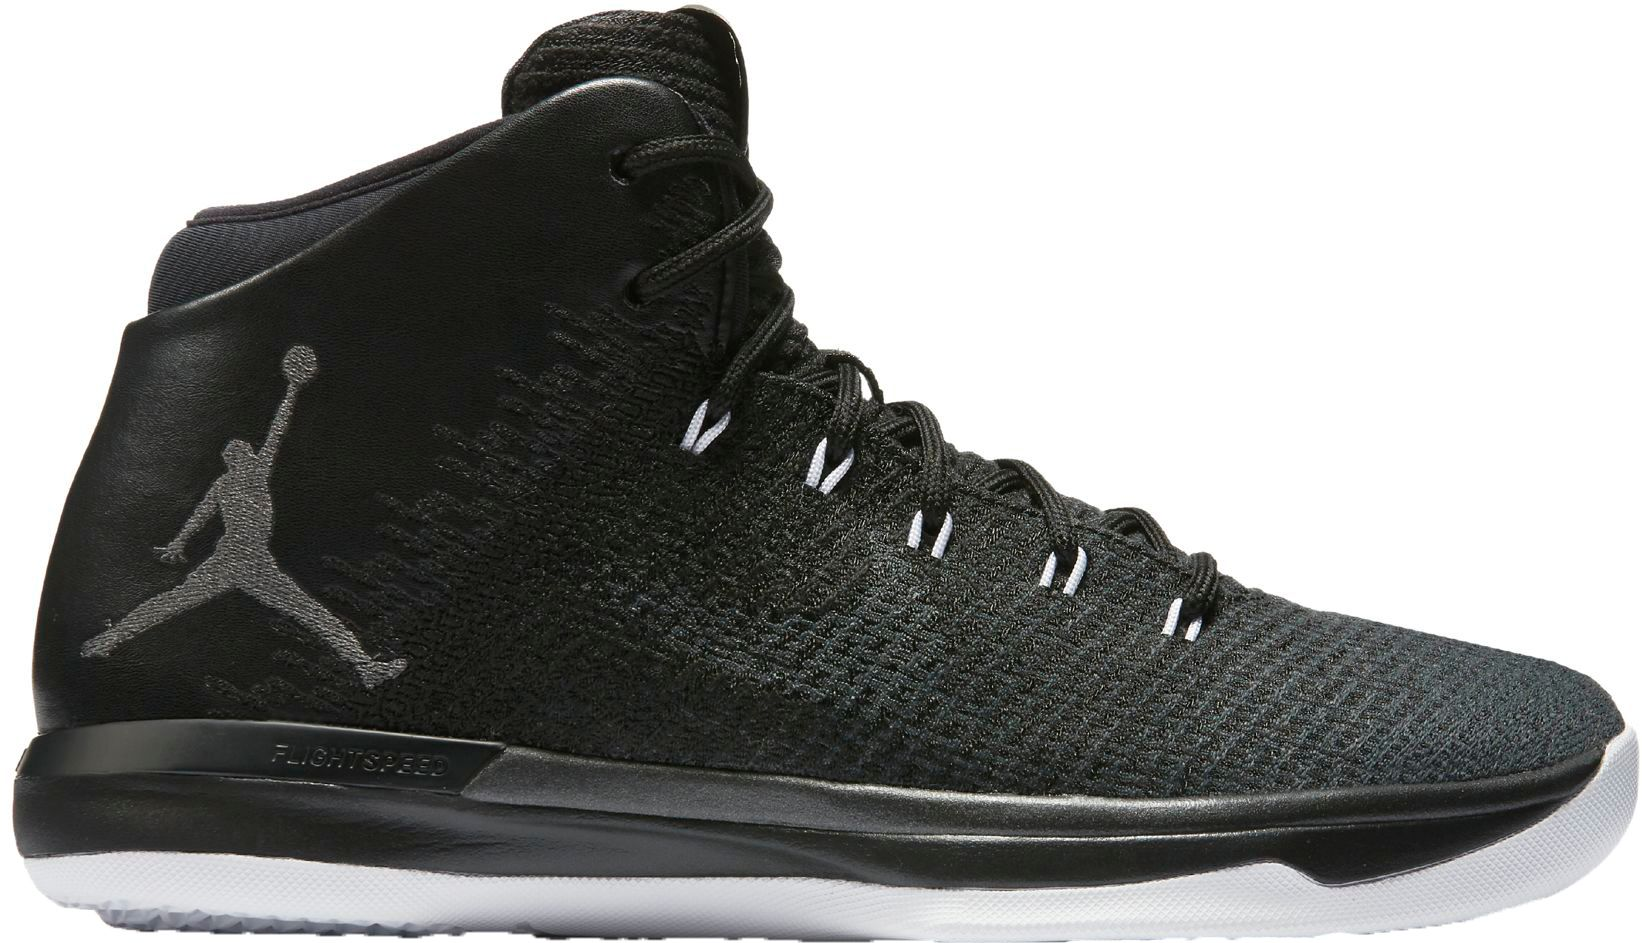 nike jordan velocity air deluxe mens basketball shoes